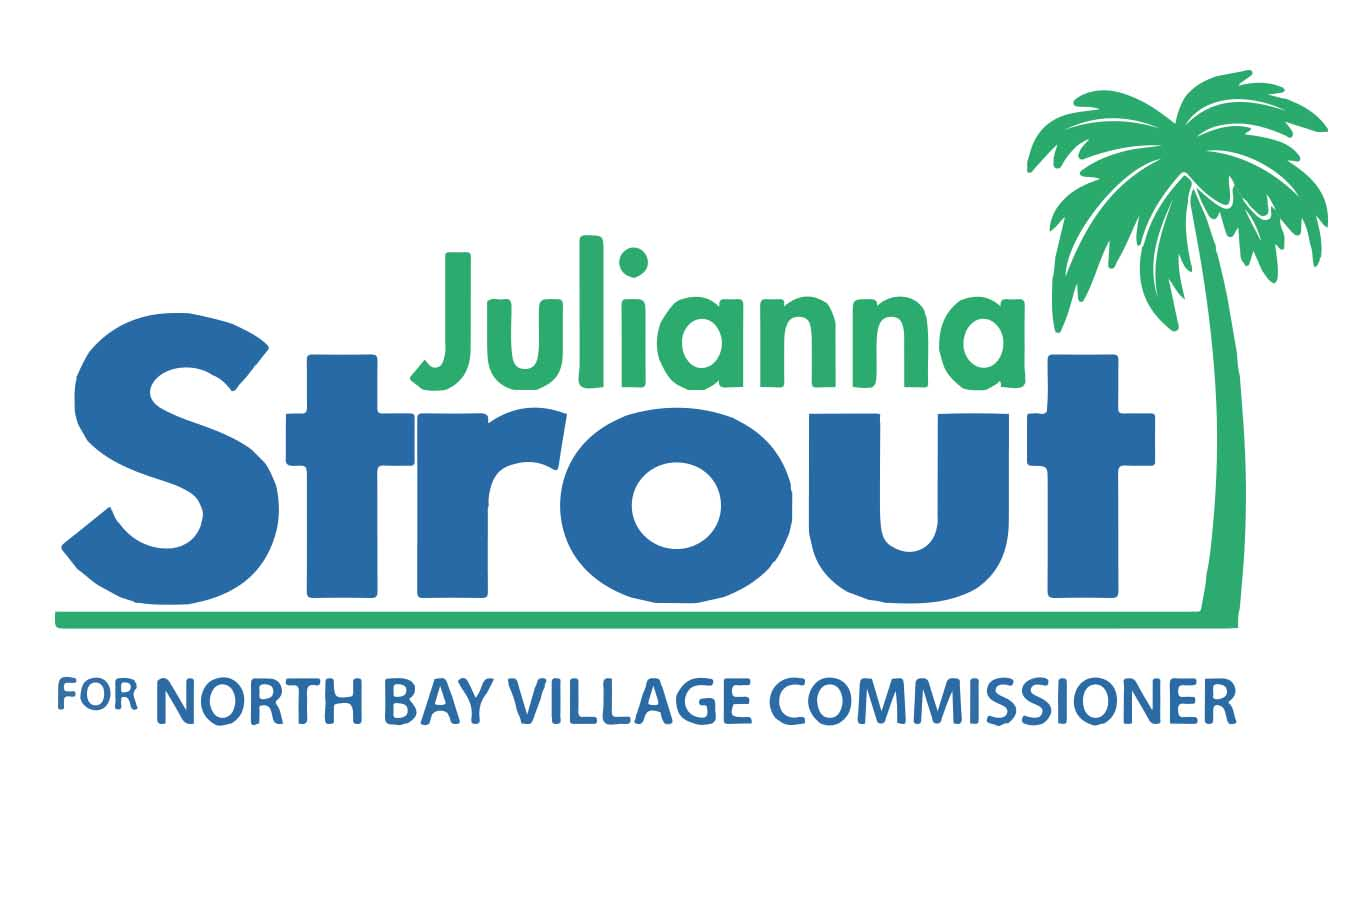 Julianna FOR Commissioner of North Bay Village